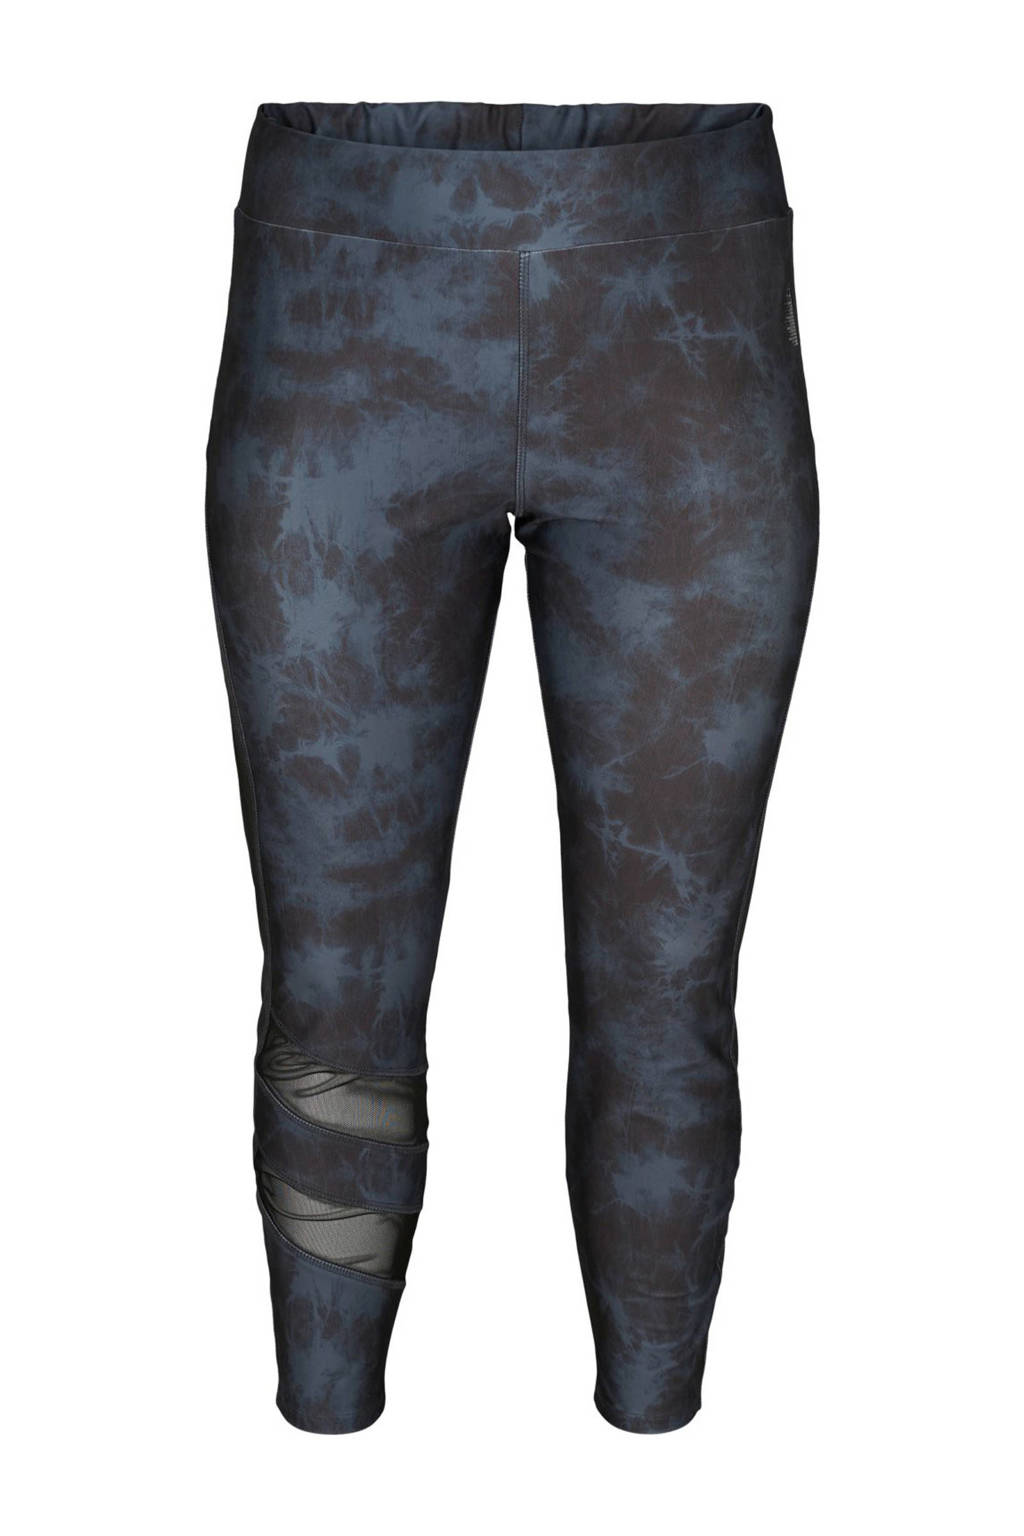 ACTIVE By Zizzi Plus Size 7/8 sportbroek antraciet/blauw, Antraciet/blauw